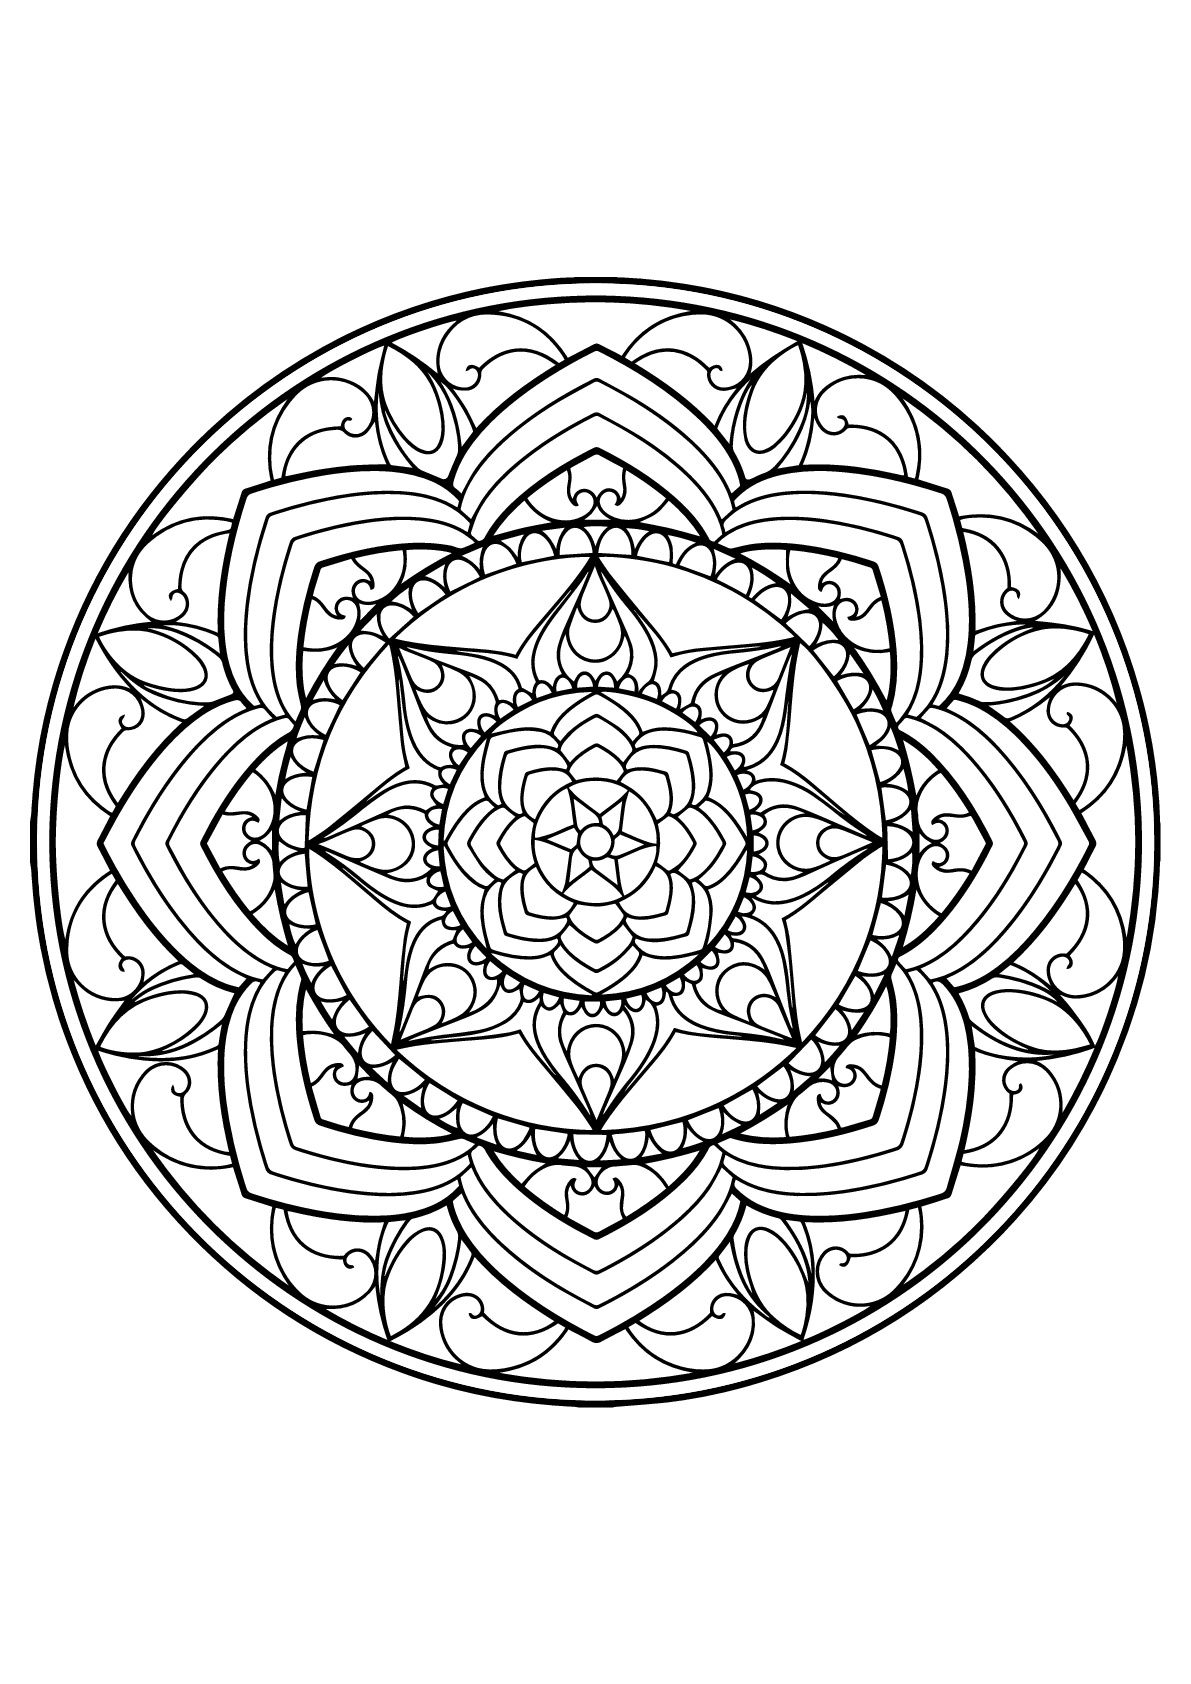 Here Are Difficult Mandalas Coloring Pages For Adults To Print For Free Mandala Is A Sanskrit Word Printable Coloring Book Mandala Coloring Coloring Pages